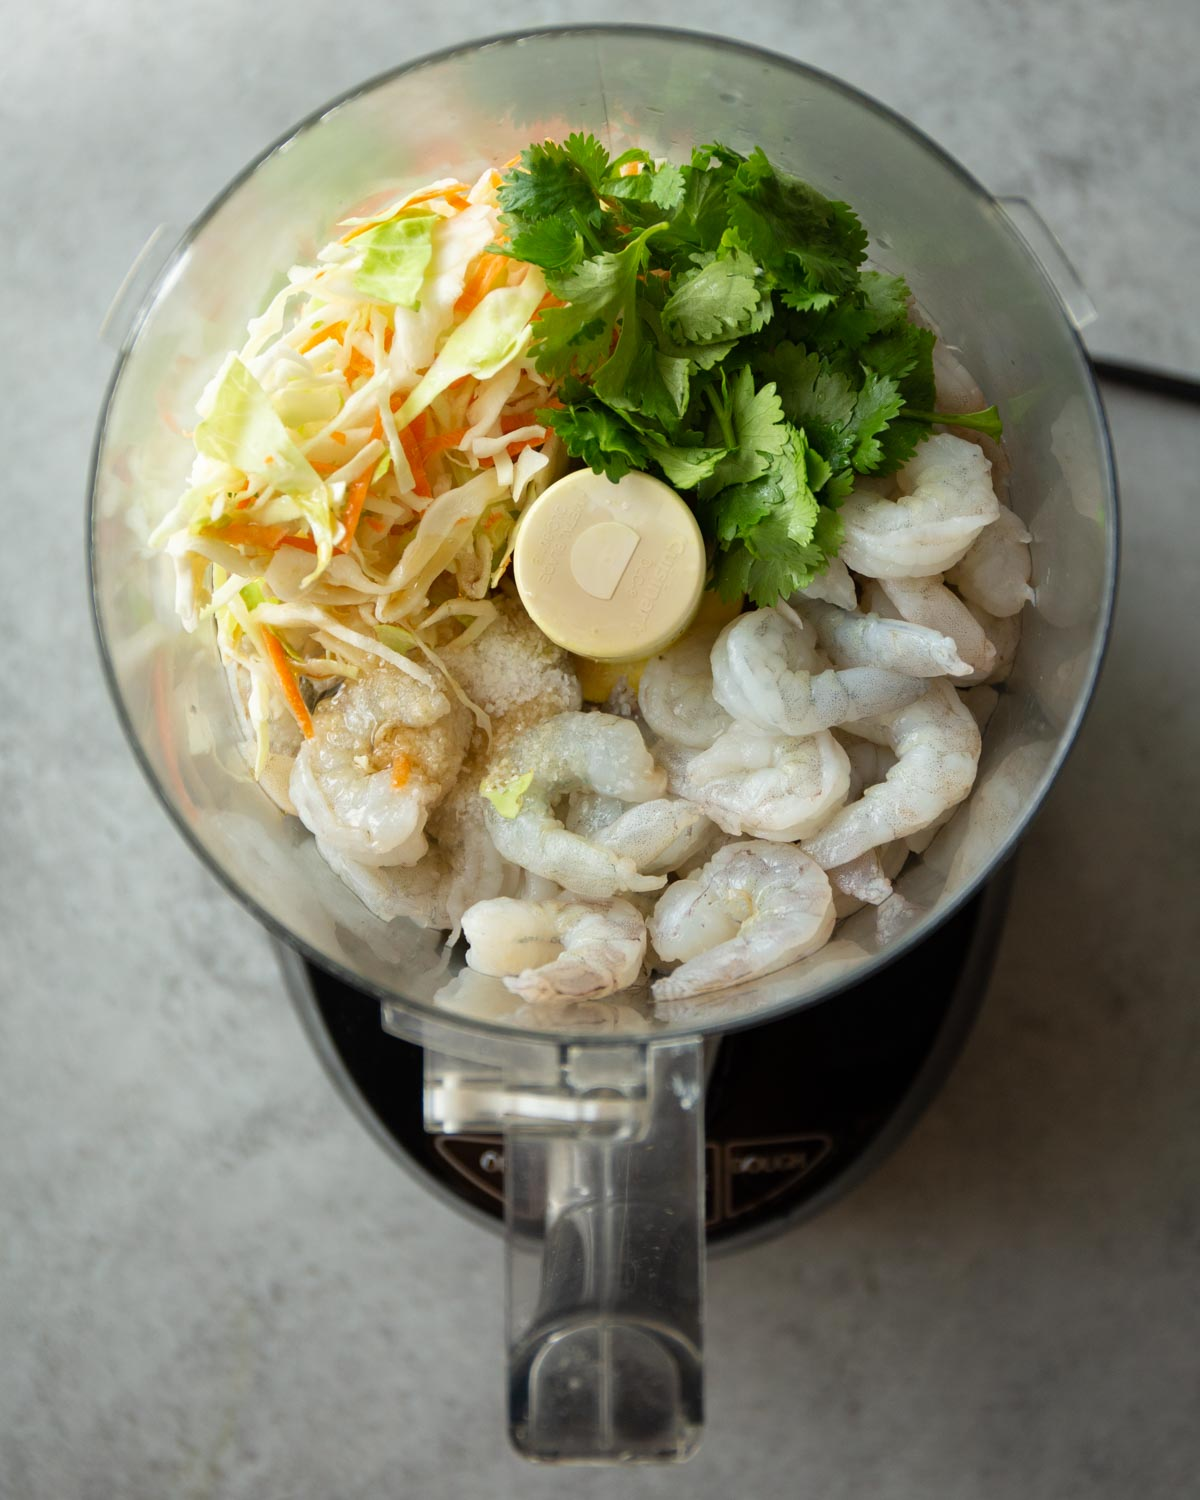 shrimp and herbs in a food processor